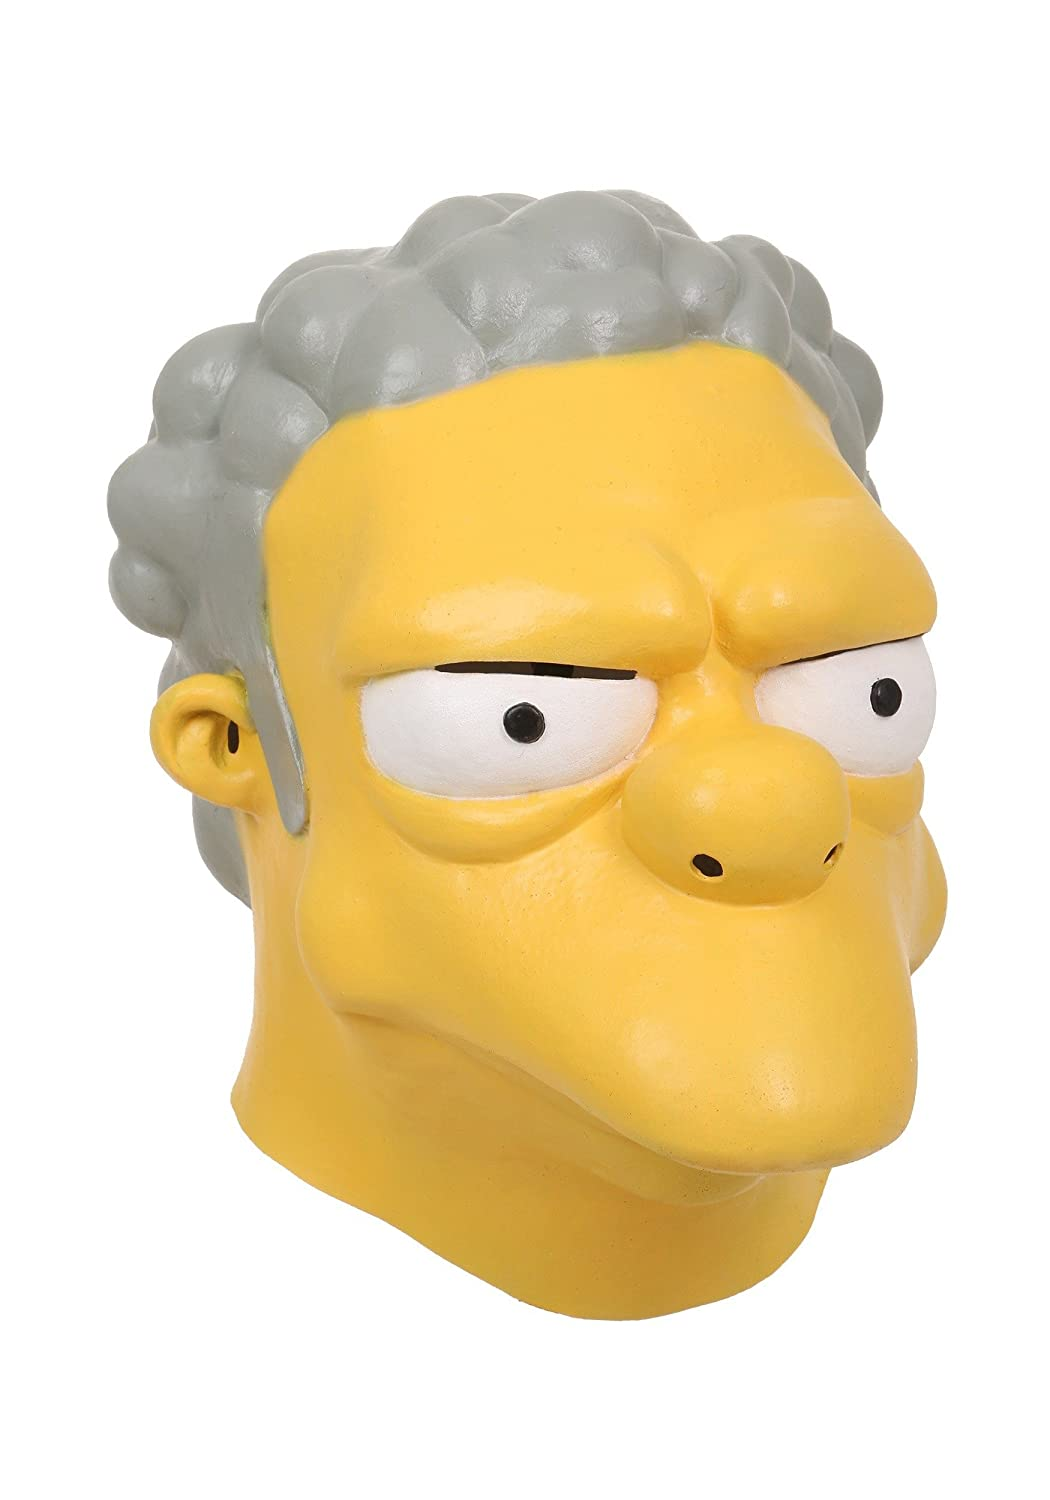 The Simpsons Moe Szyslak Mask Standardhttps://amzn.to/2SBonUg